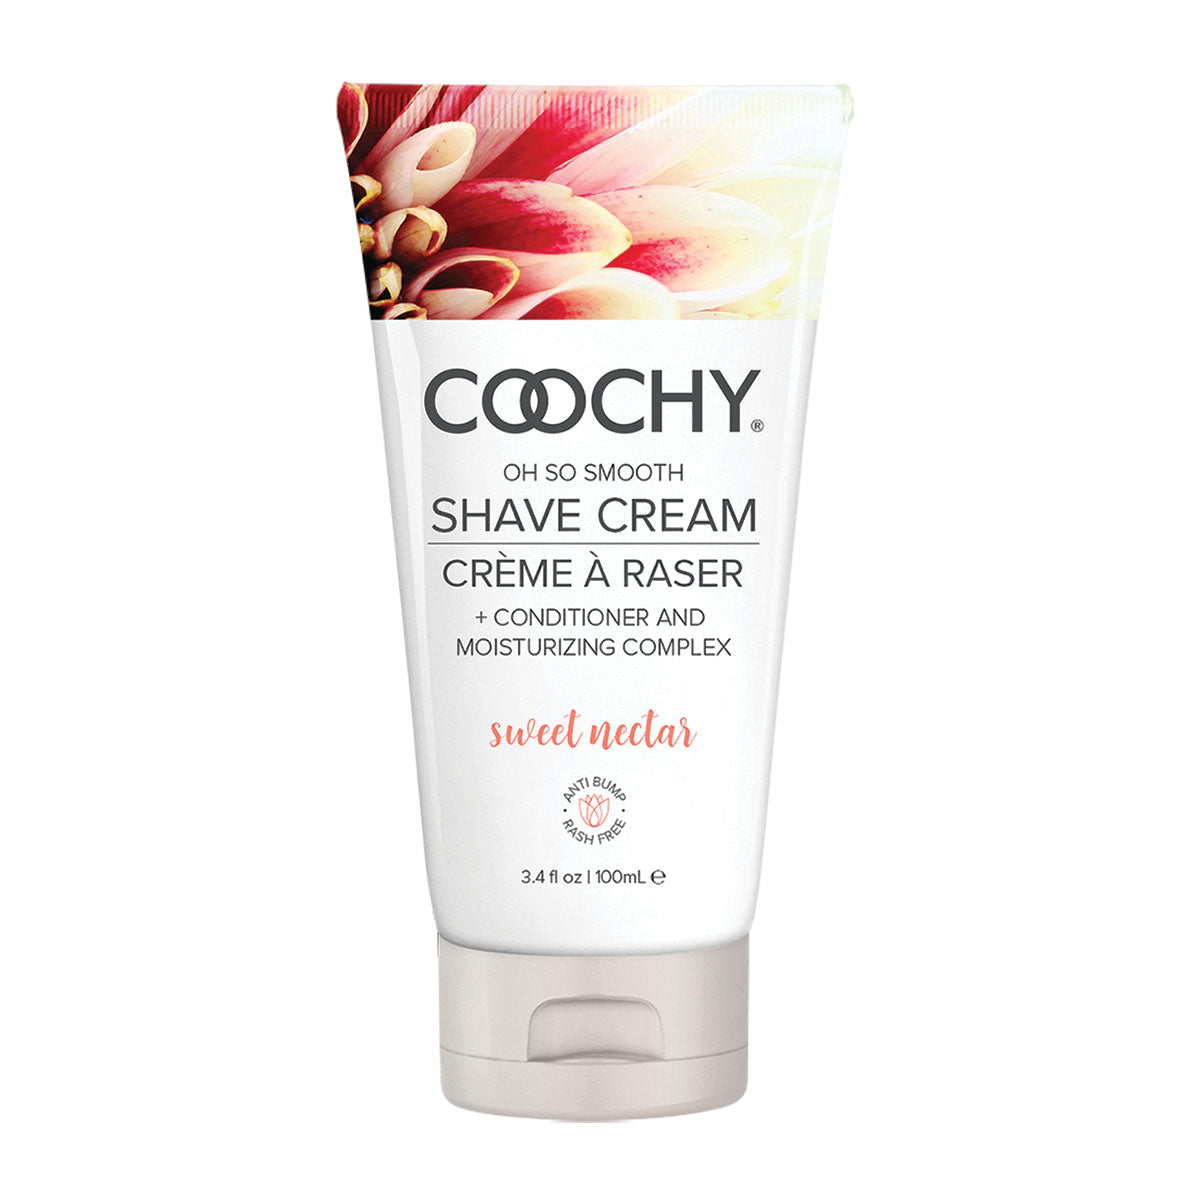 Coochy Shave Cream 3.4oz - Sweet Nectar